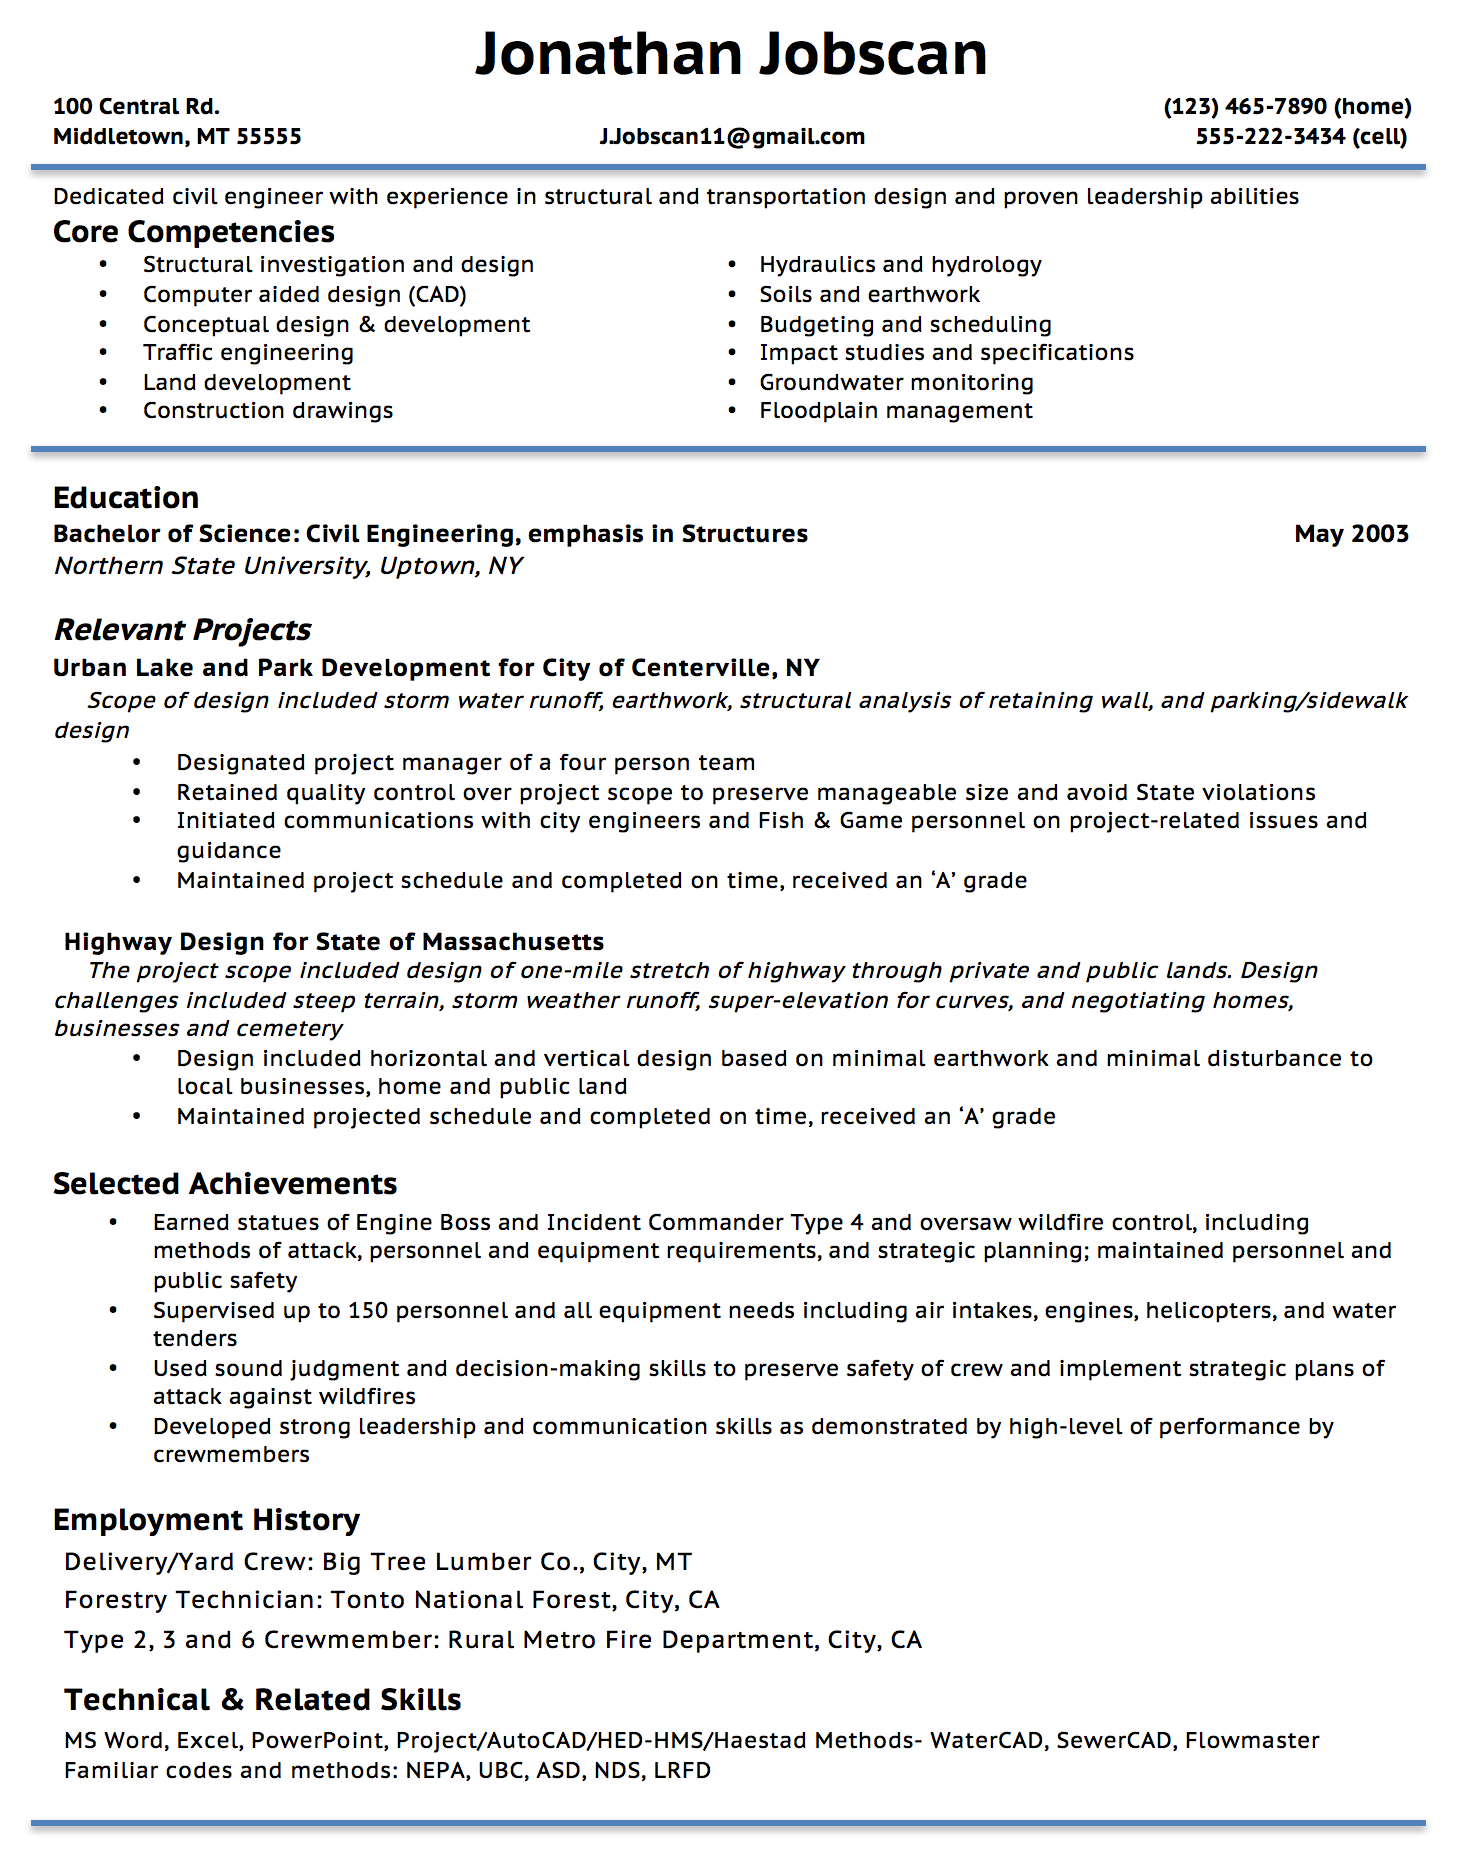 Opposenewapstandardsus  Inspiring Resume Writing Guide  Jobscan With Fascinating Example Of A Functional Resume Format With Enchanting Clean Resume Template Also Purchasing Resume In Addition Resume Evaluation And Systems Engineer Resume As Well As Technician Resume Additionally Basic Resume Outline From Jobscanco With Opposenewapstandardsus  Fascinating Resume Writing Guide  Jobscan With Enchanting Example Of A Functional Resume Format And Inspiring Clean Resume Template Also Purchasing Resume In Addition Resume Evaluation From Jobscanco